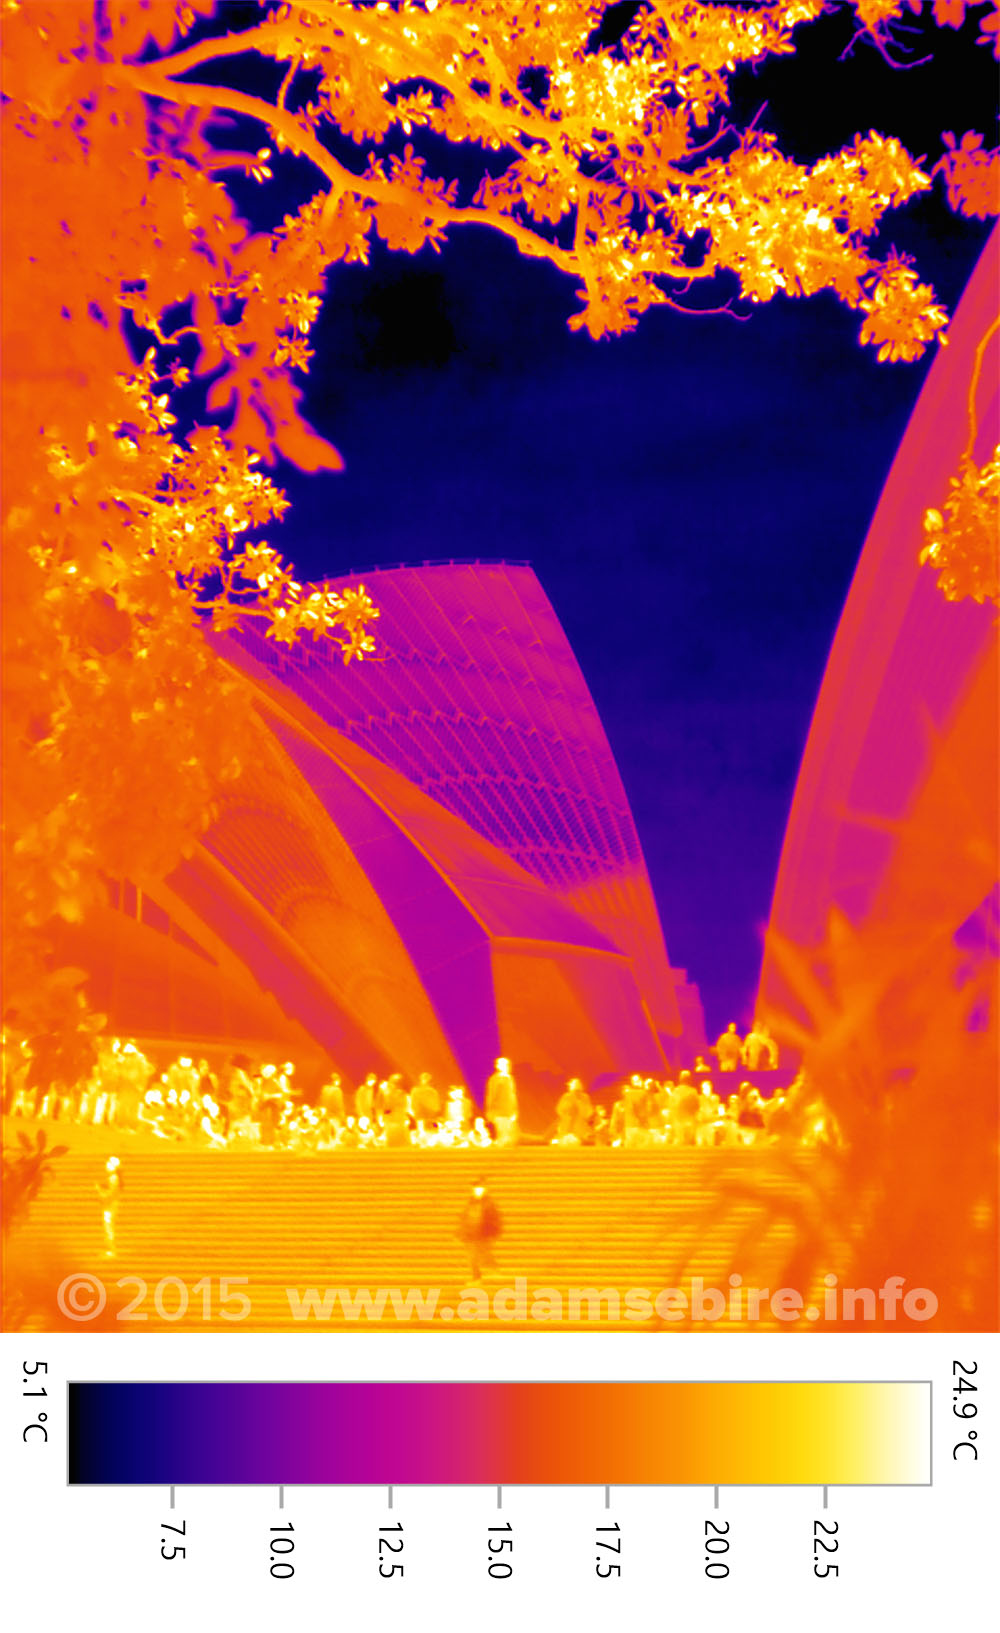 Sydney Opera House infrared thermal image showing prinicple of white roofs as energy efficient sustainable design